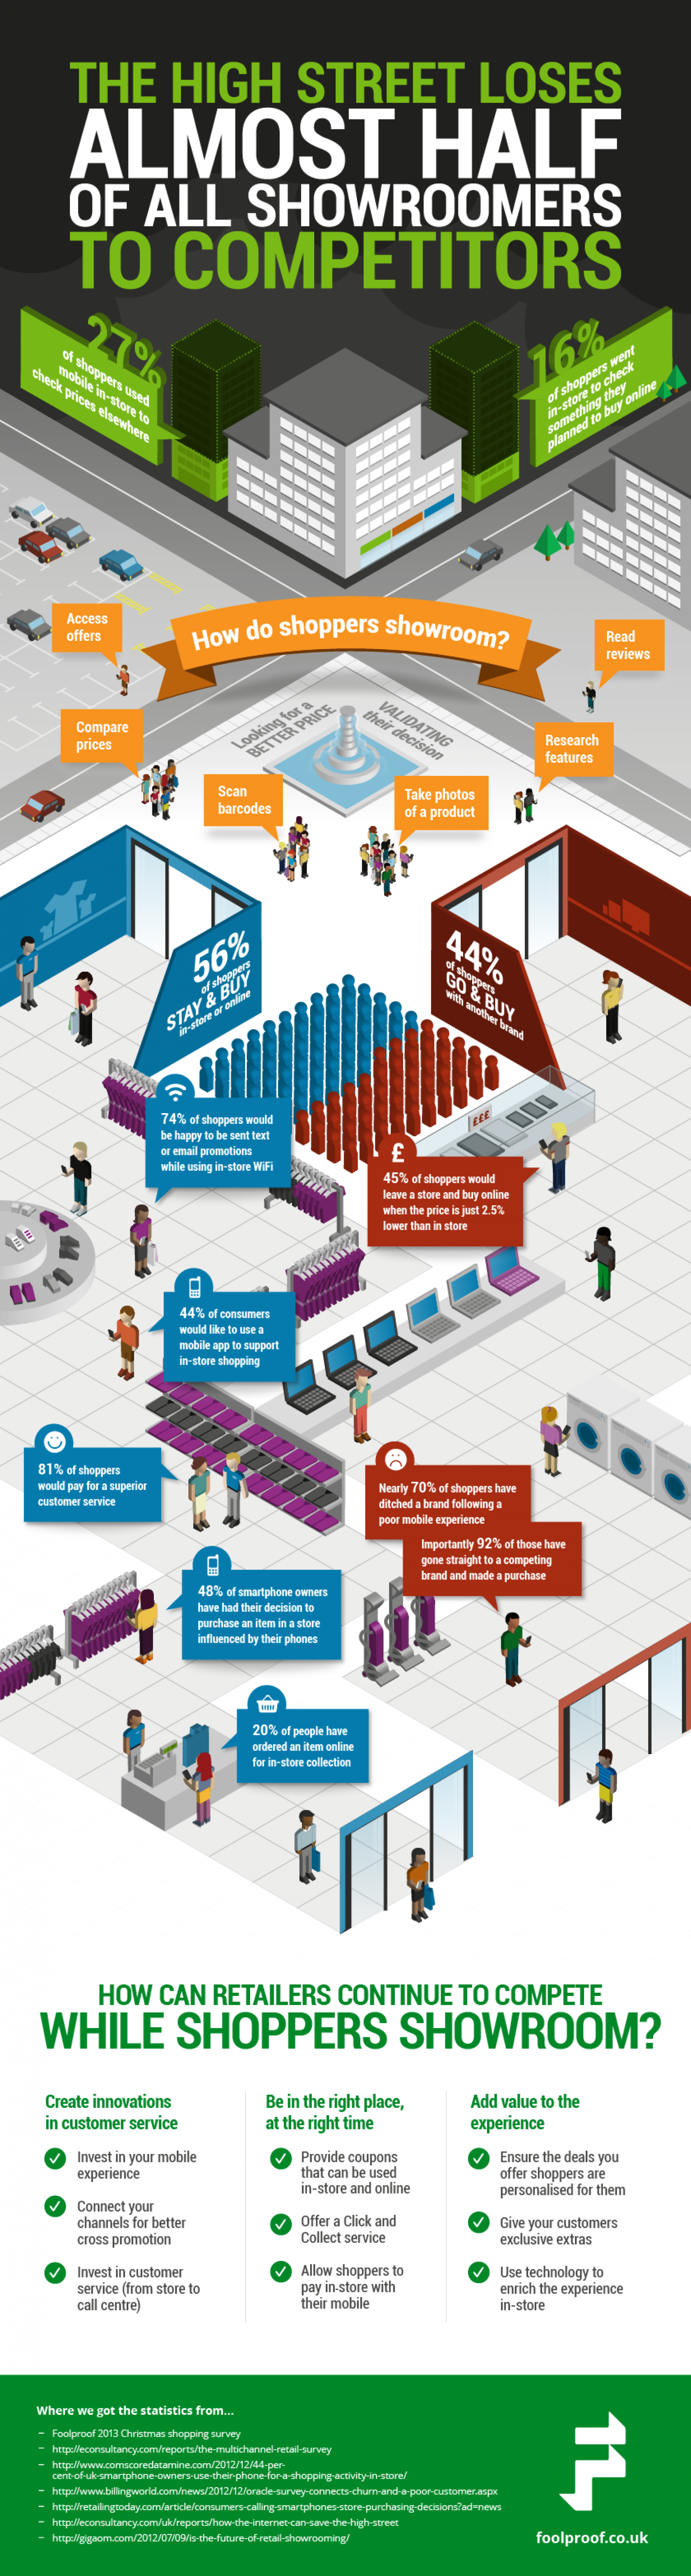 The High Street Loses Almost Half Of All Showroomers To Competitors Infographic